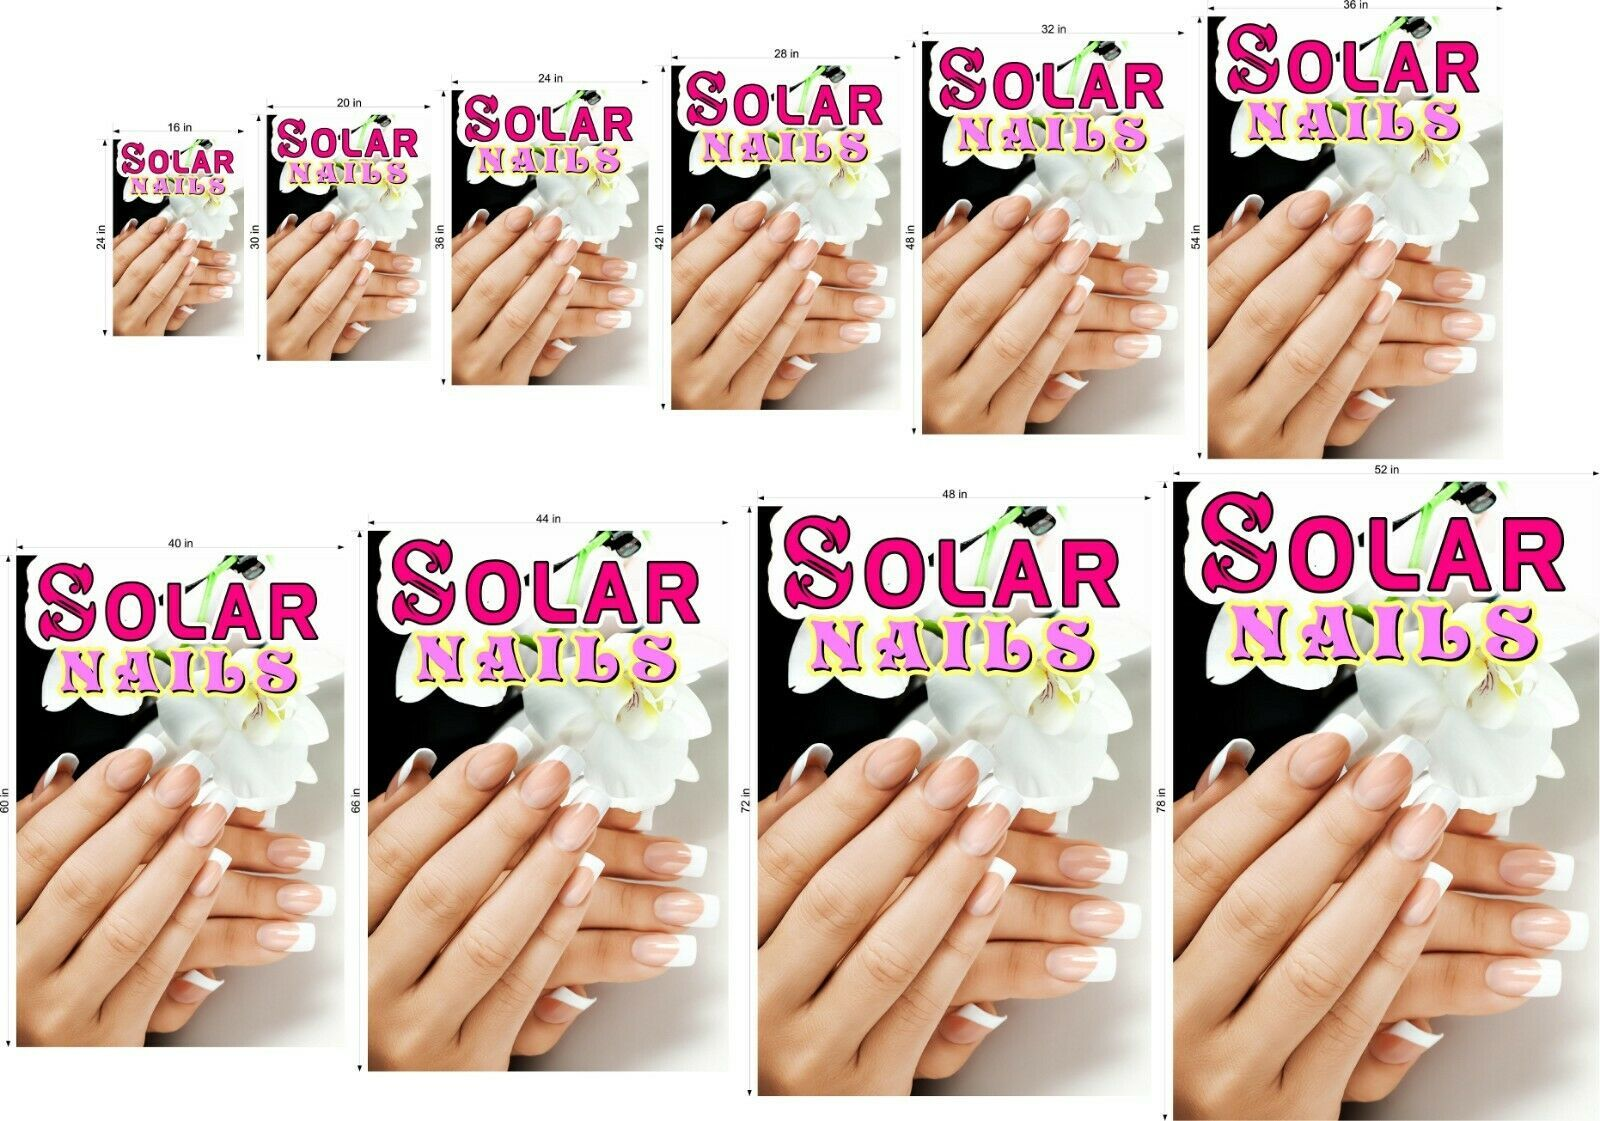 Solar VI Perforated 70/30 See Through Window Poster Manicure Nail Salon Vertical